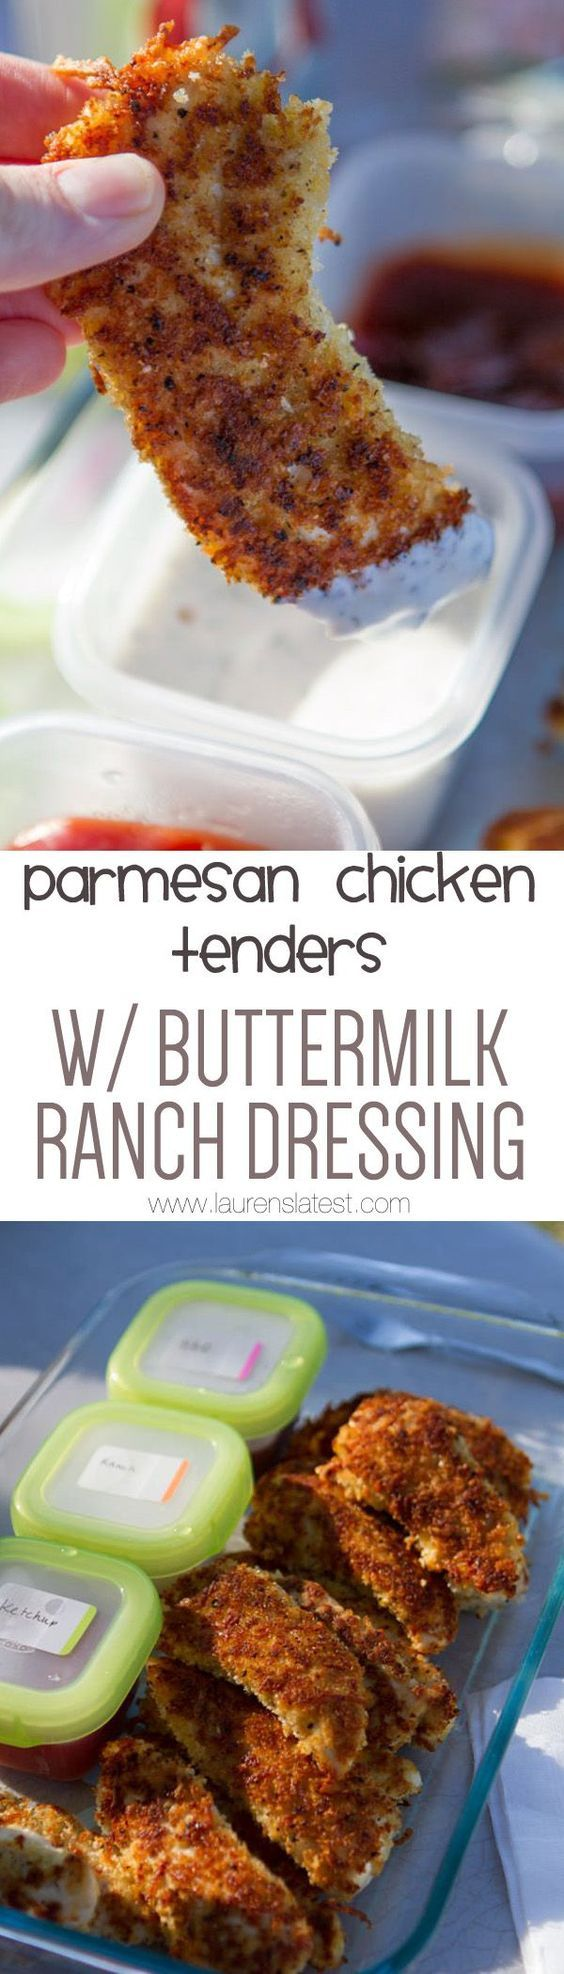 Parmesan-Crusted Chicken Tenders with Buttermilk Ranch Dressing